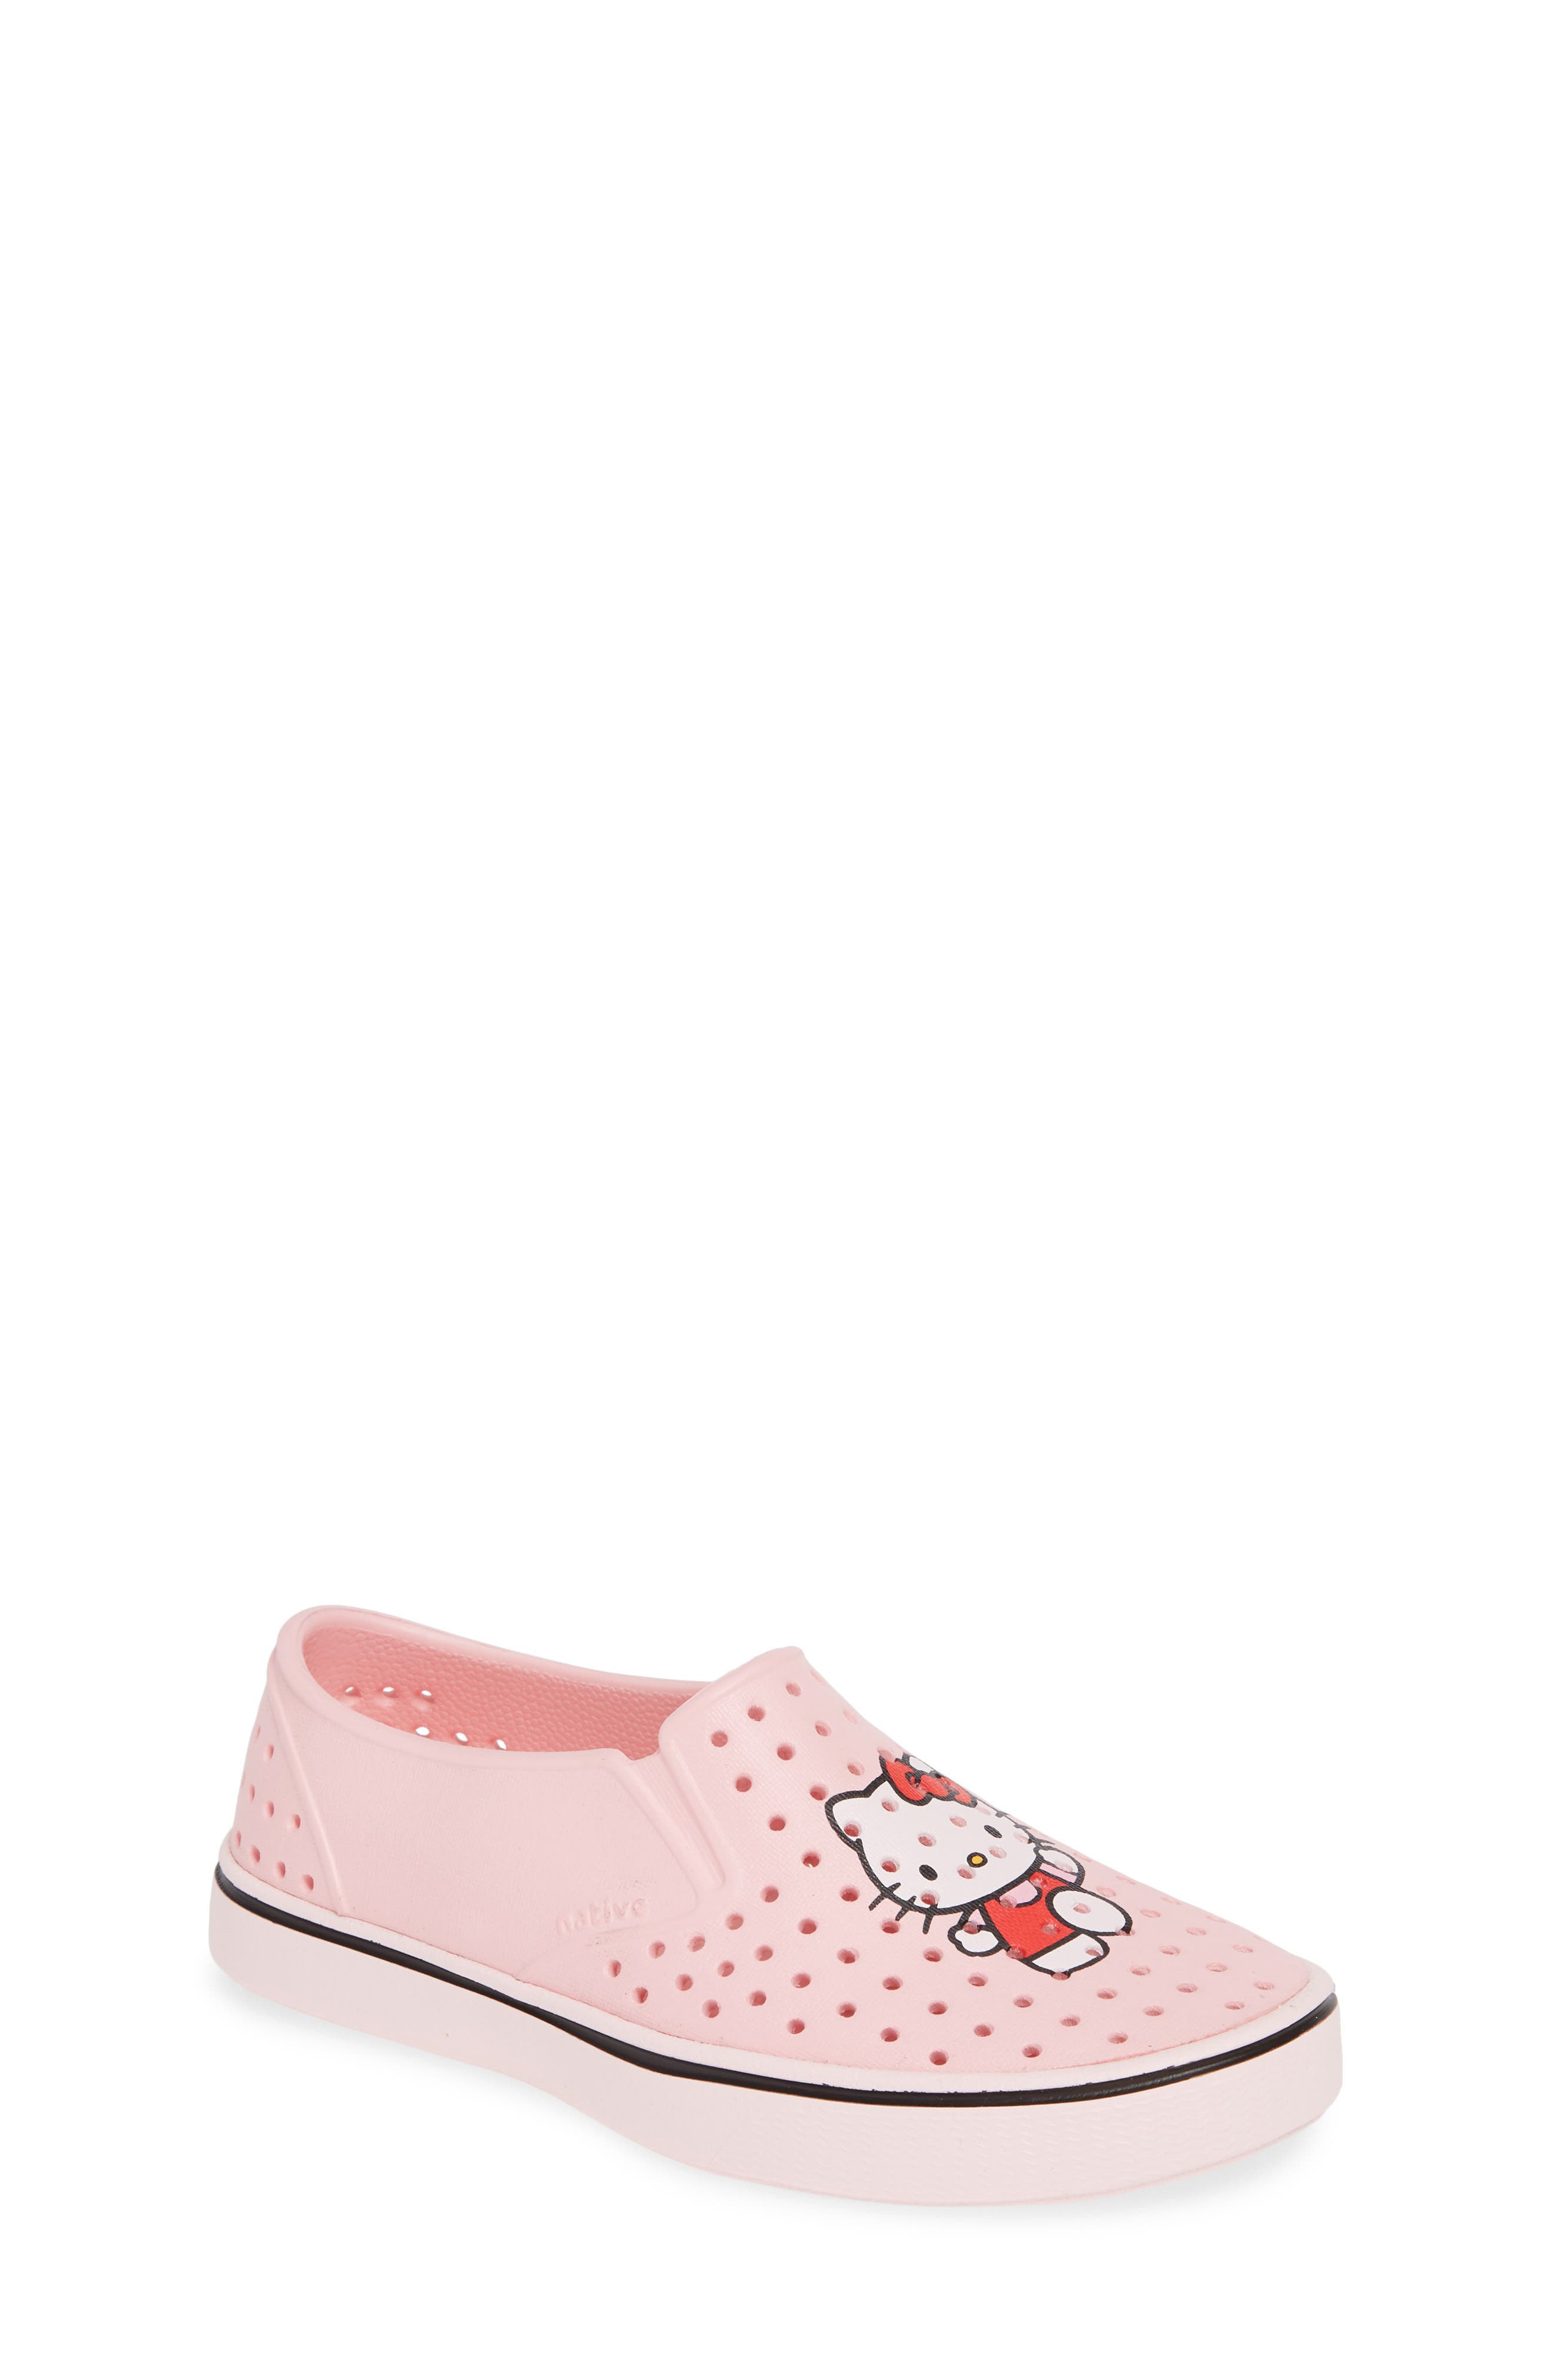 Native Shoes Miles Print Slip-On Sneaker